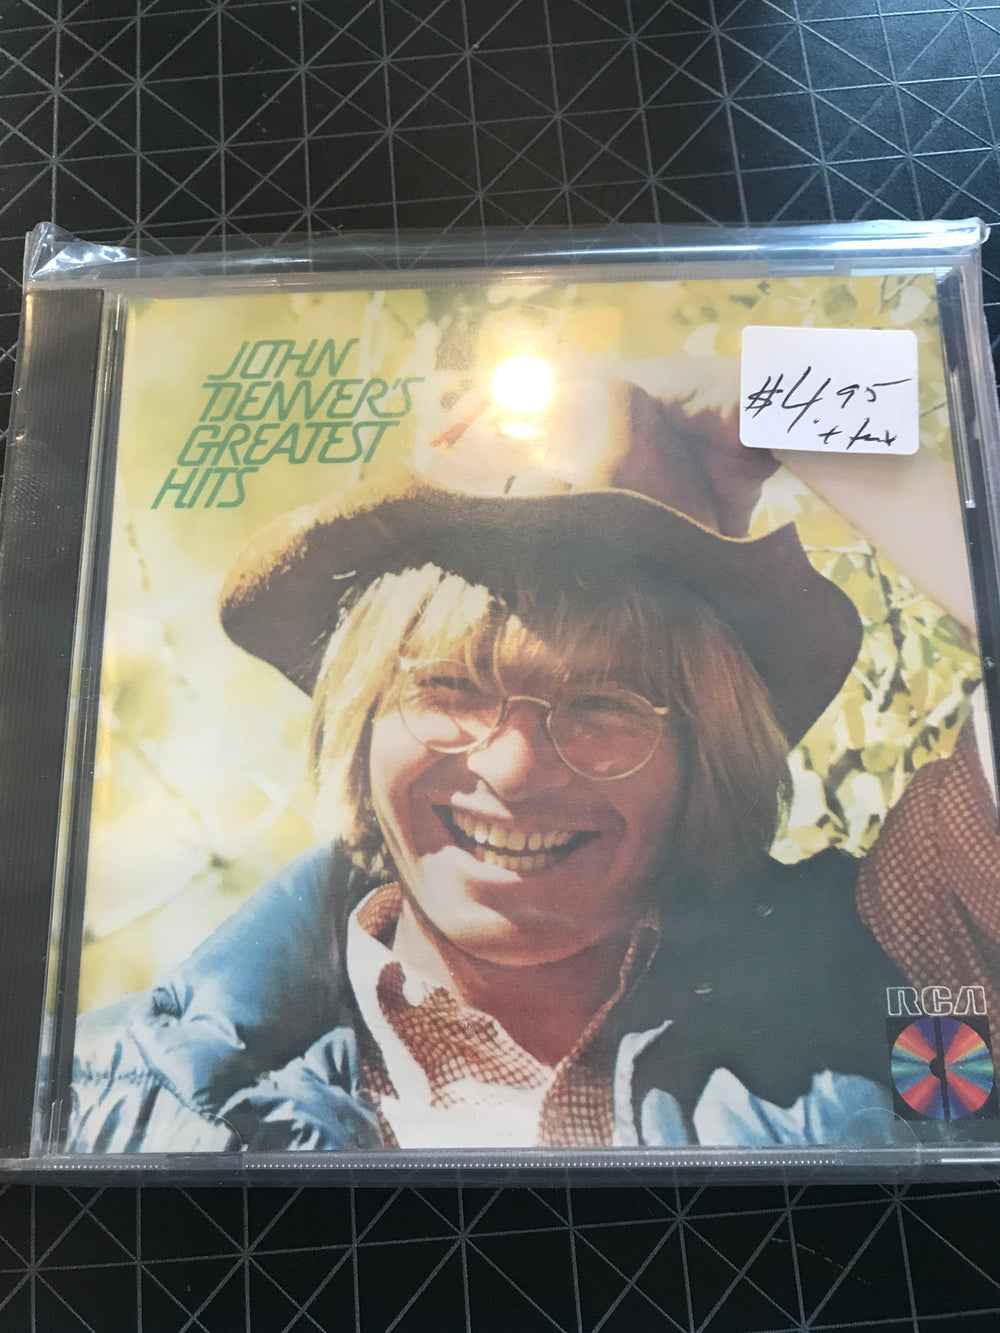 John Denver - Greatest Hits - Used CD